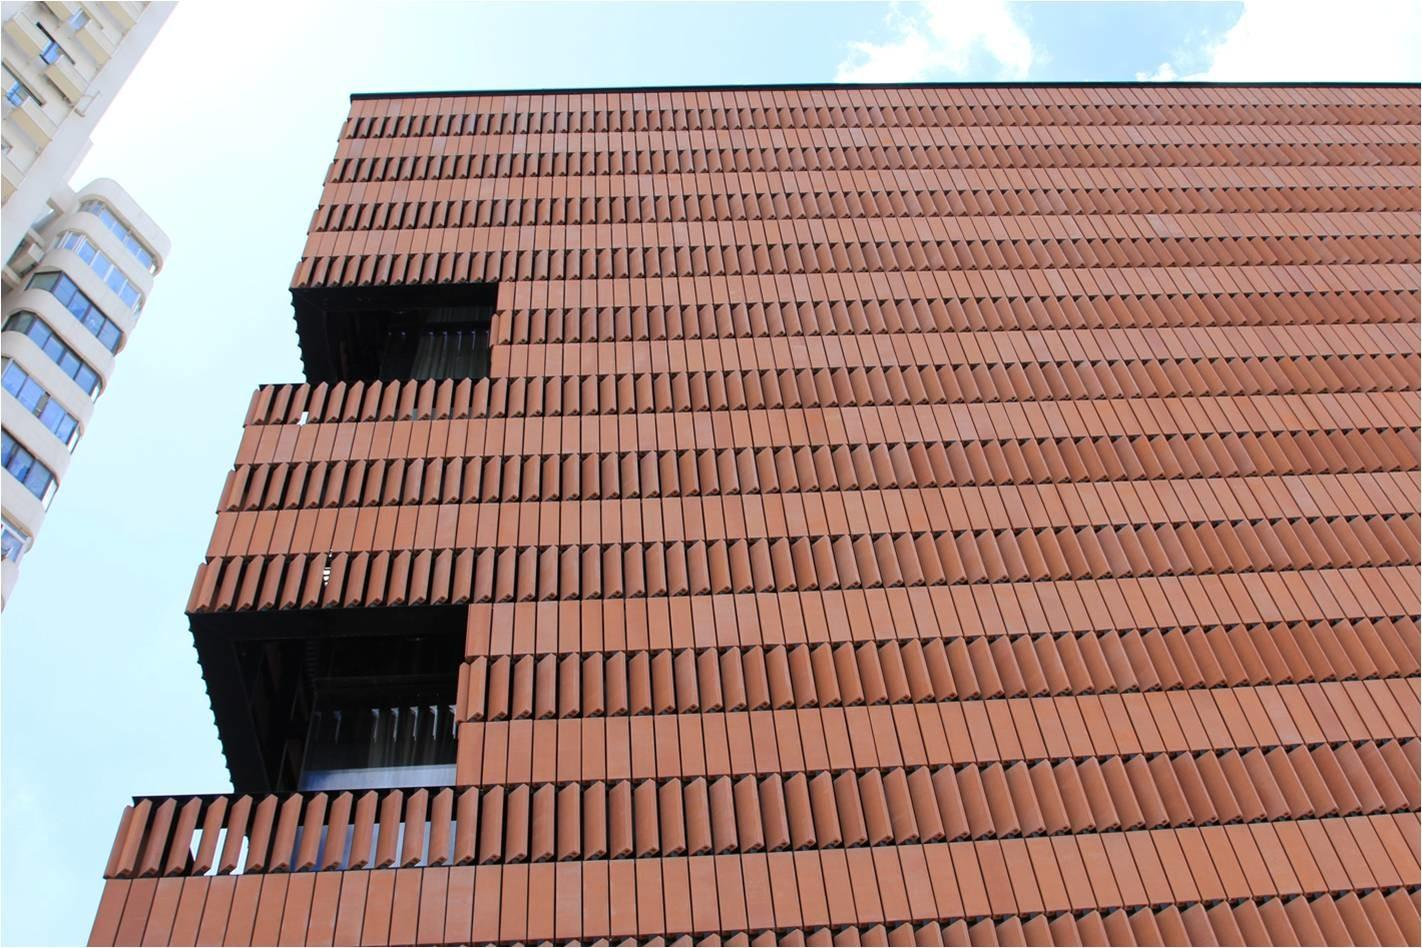 Hengshang Hotel Shanghai Lopo China Terracotta Facade